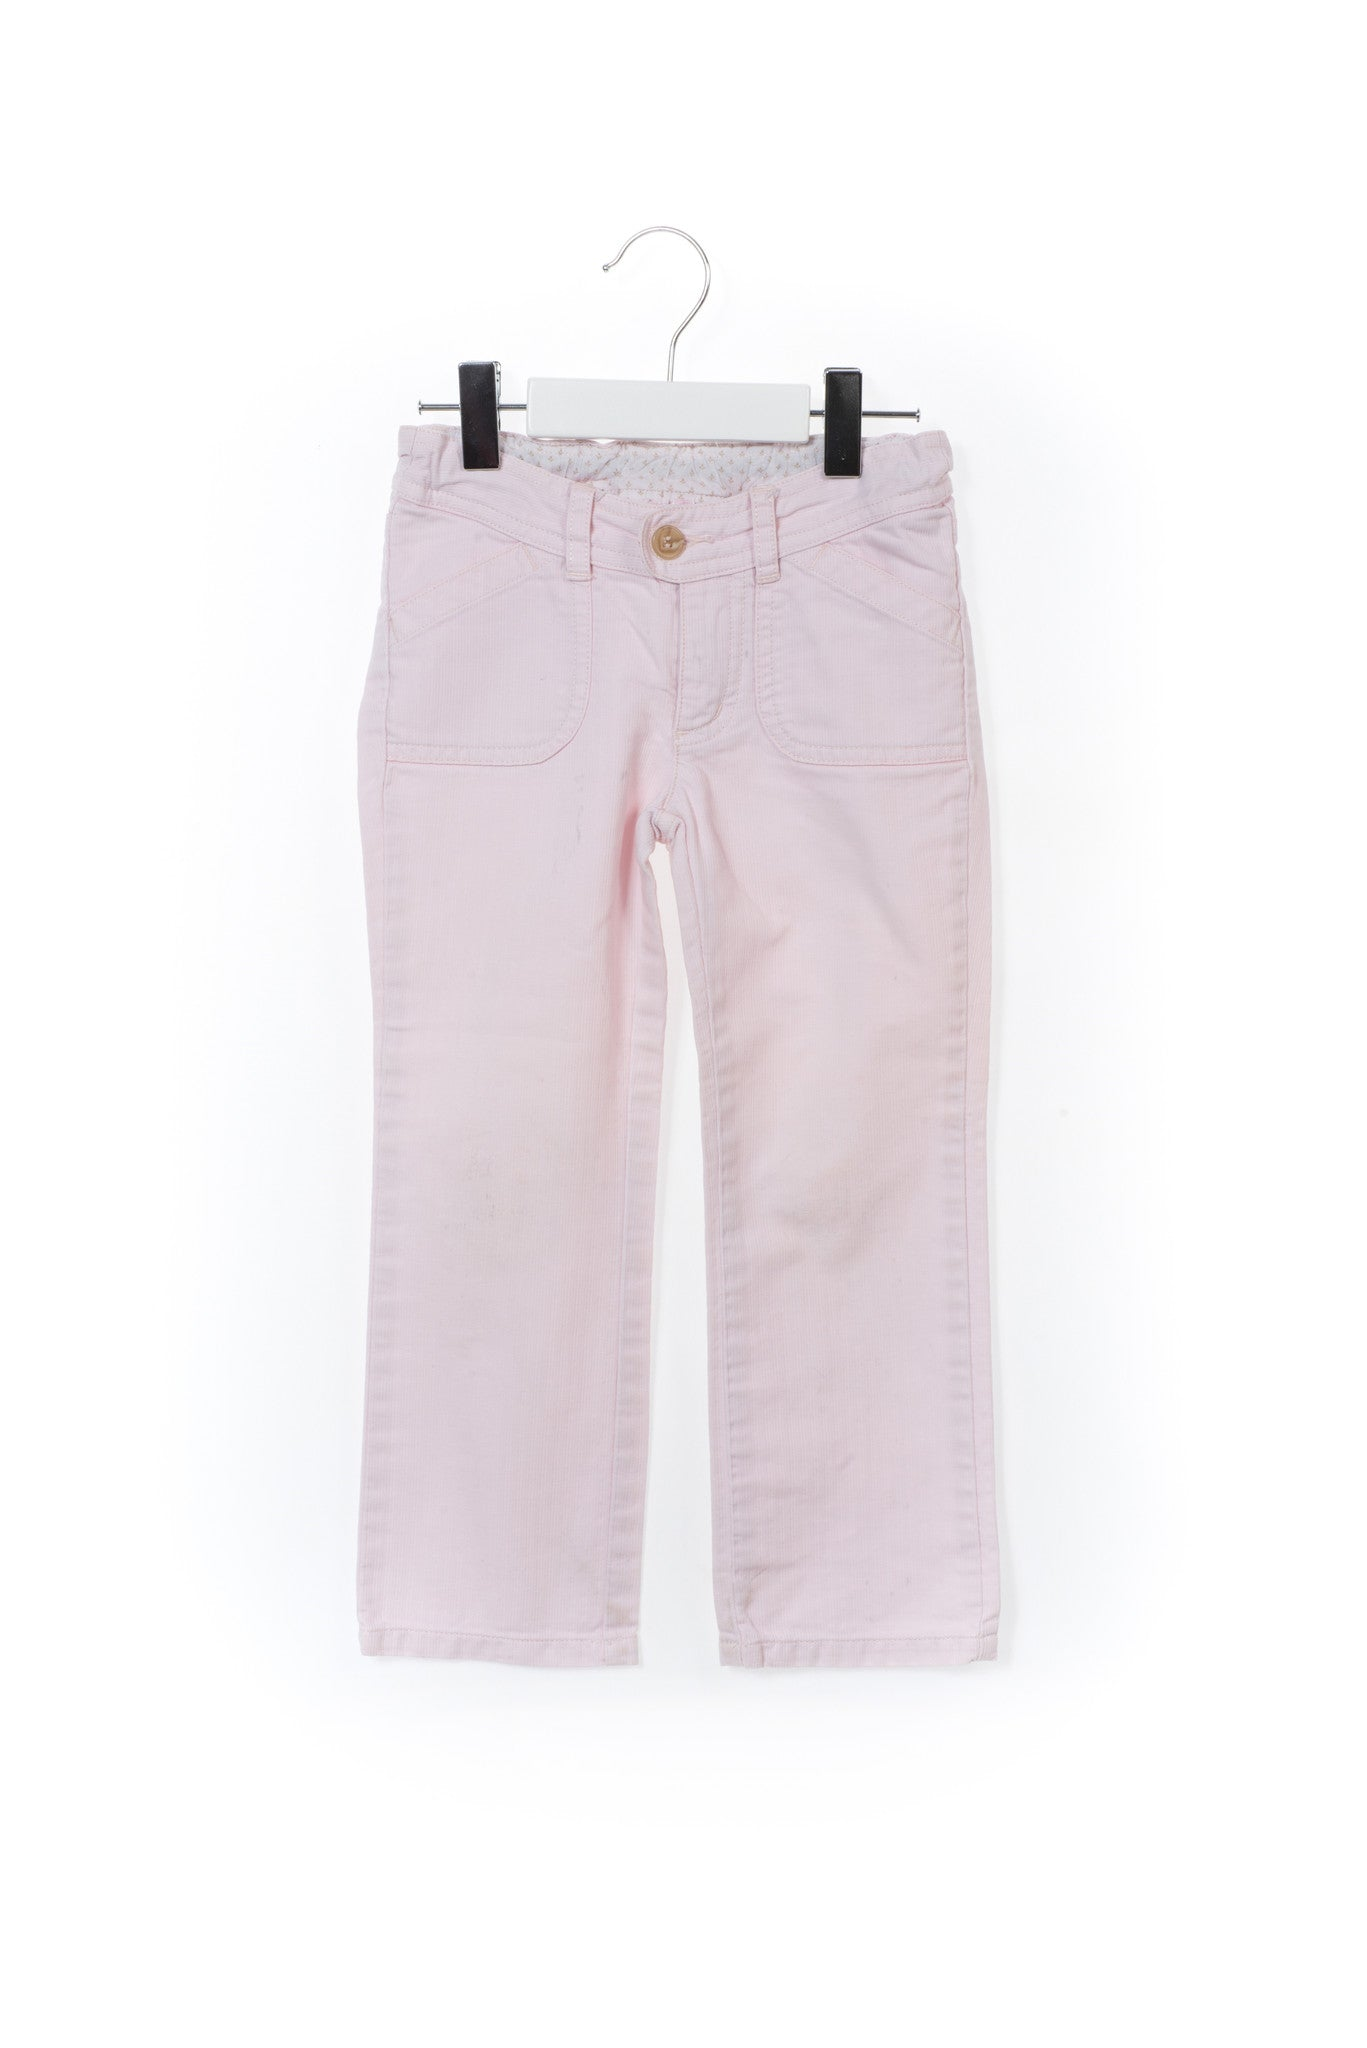 10001101 Bonpoint Kids~Jeans 4T at Retykle